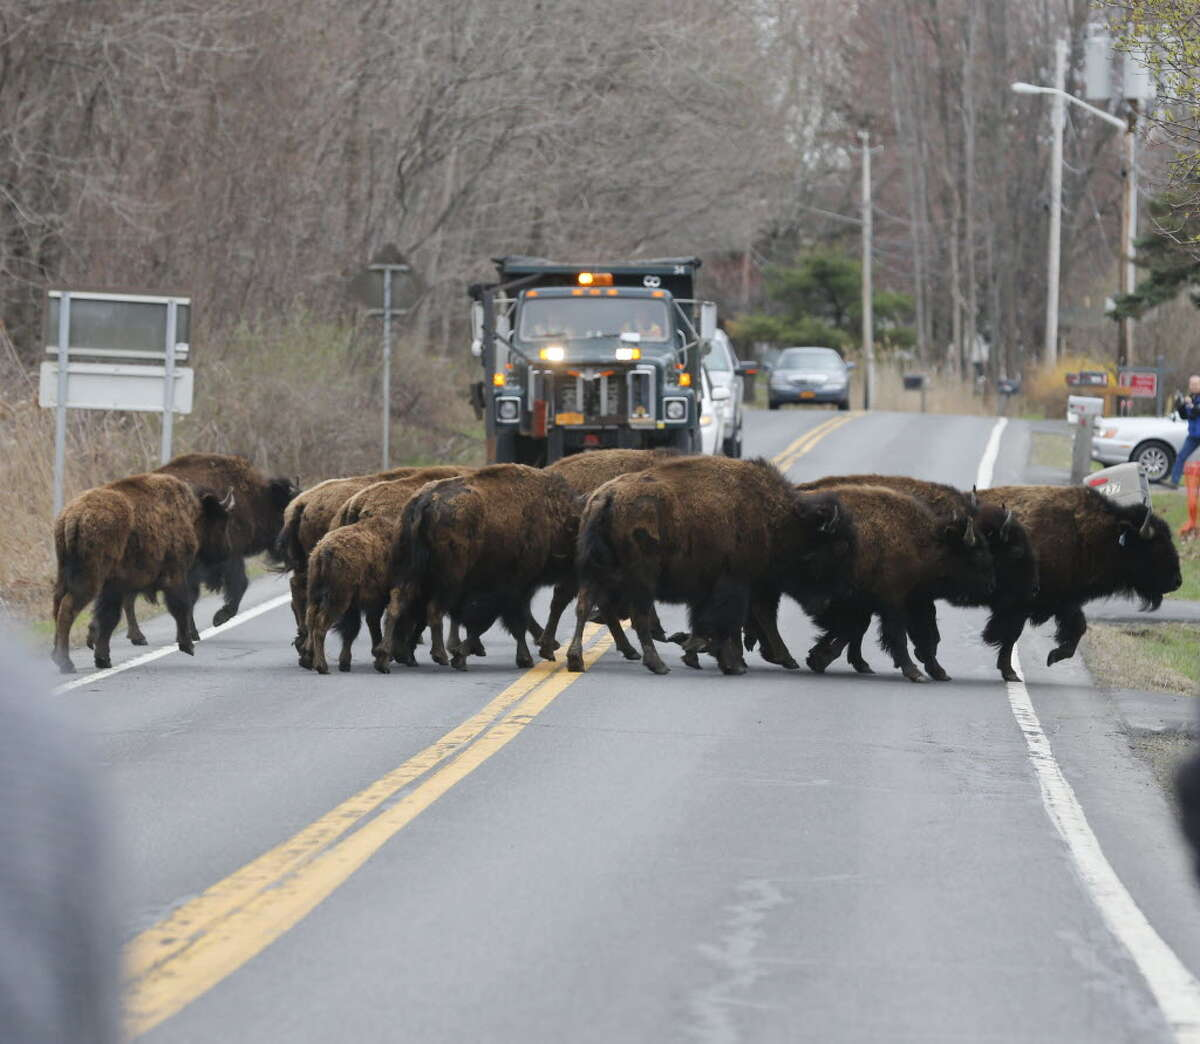 A herd of buffalo cross a road, Friday, April 24, 2015, in Bethlehem, N.Y. About 15 of the animals got loose Thursday from a farm in the Rensselaer County town of Schodack, on the river's east bank a few miles southeast of Albany. (AP Photo/Mike Groll)